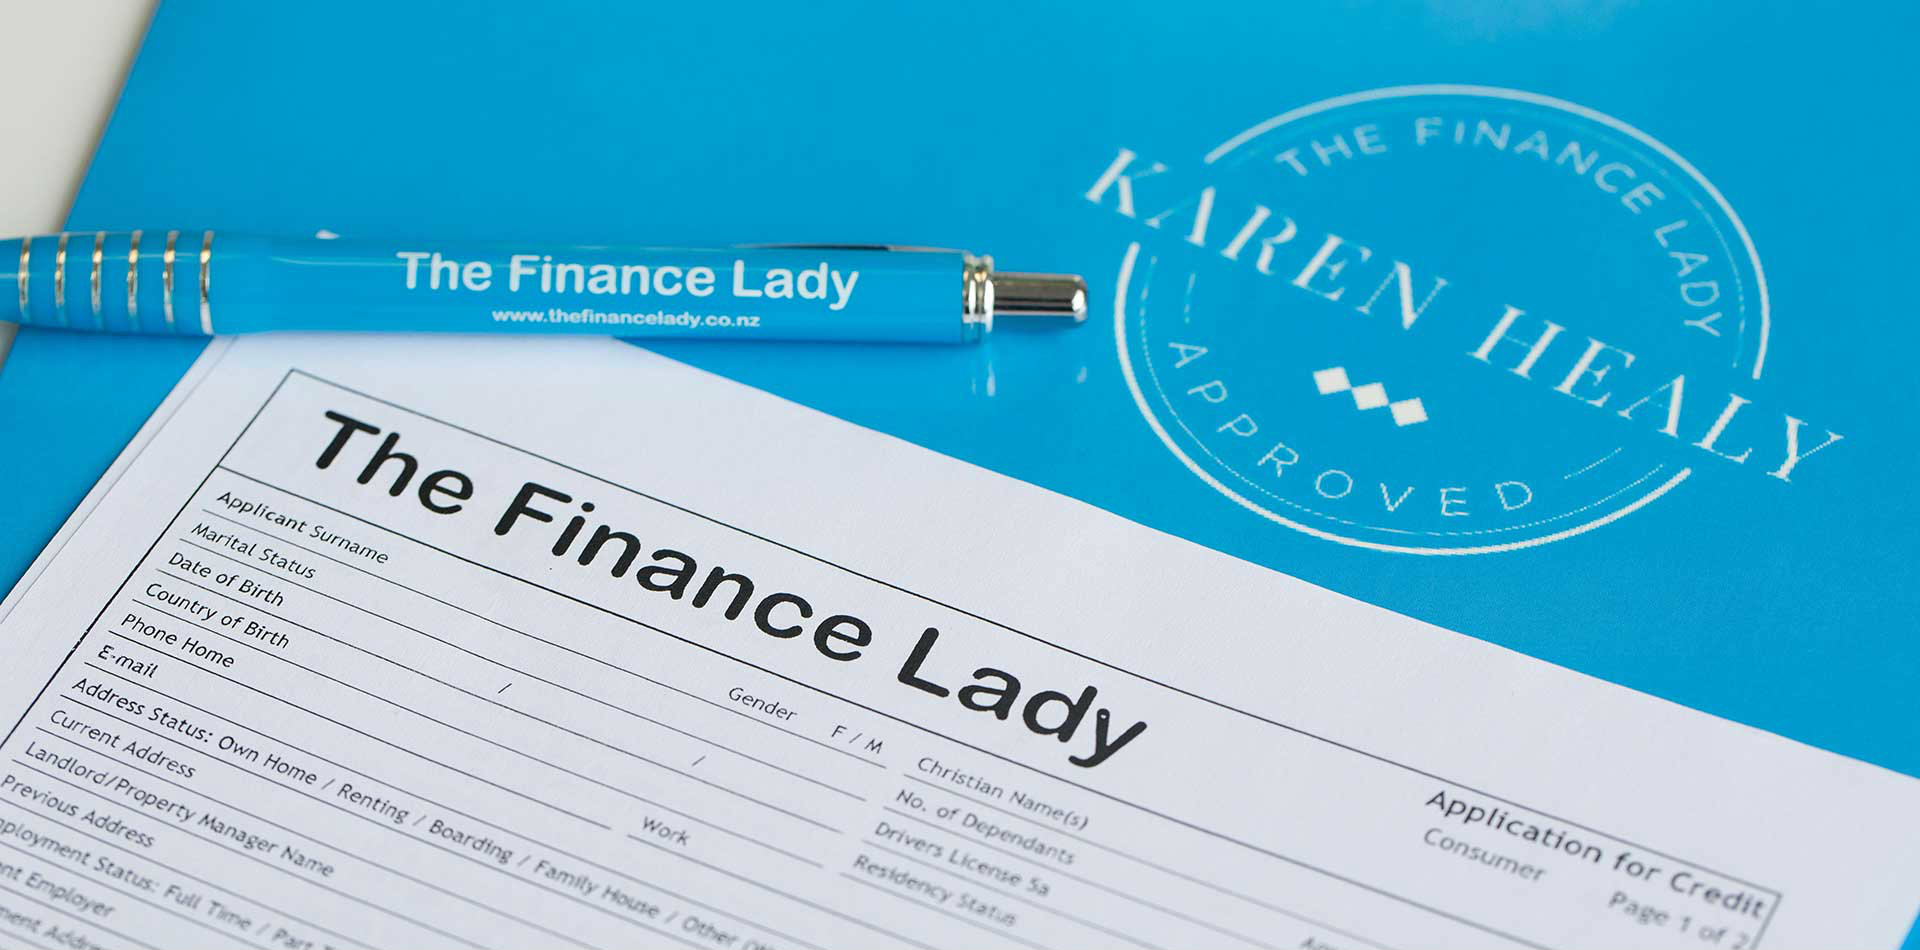 The Finance Lady Forms